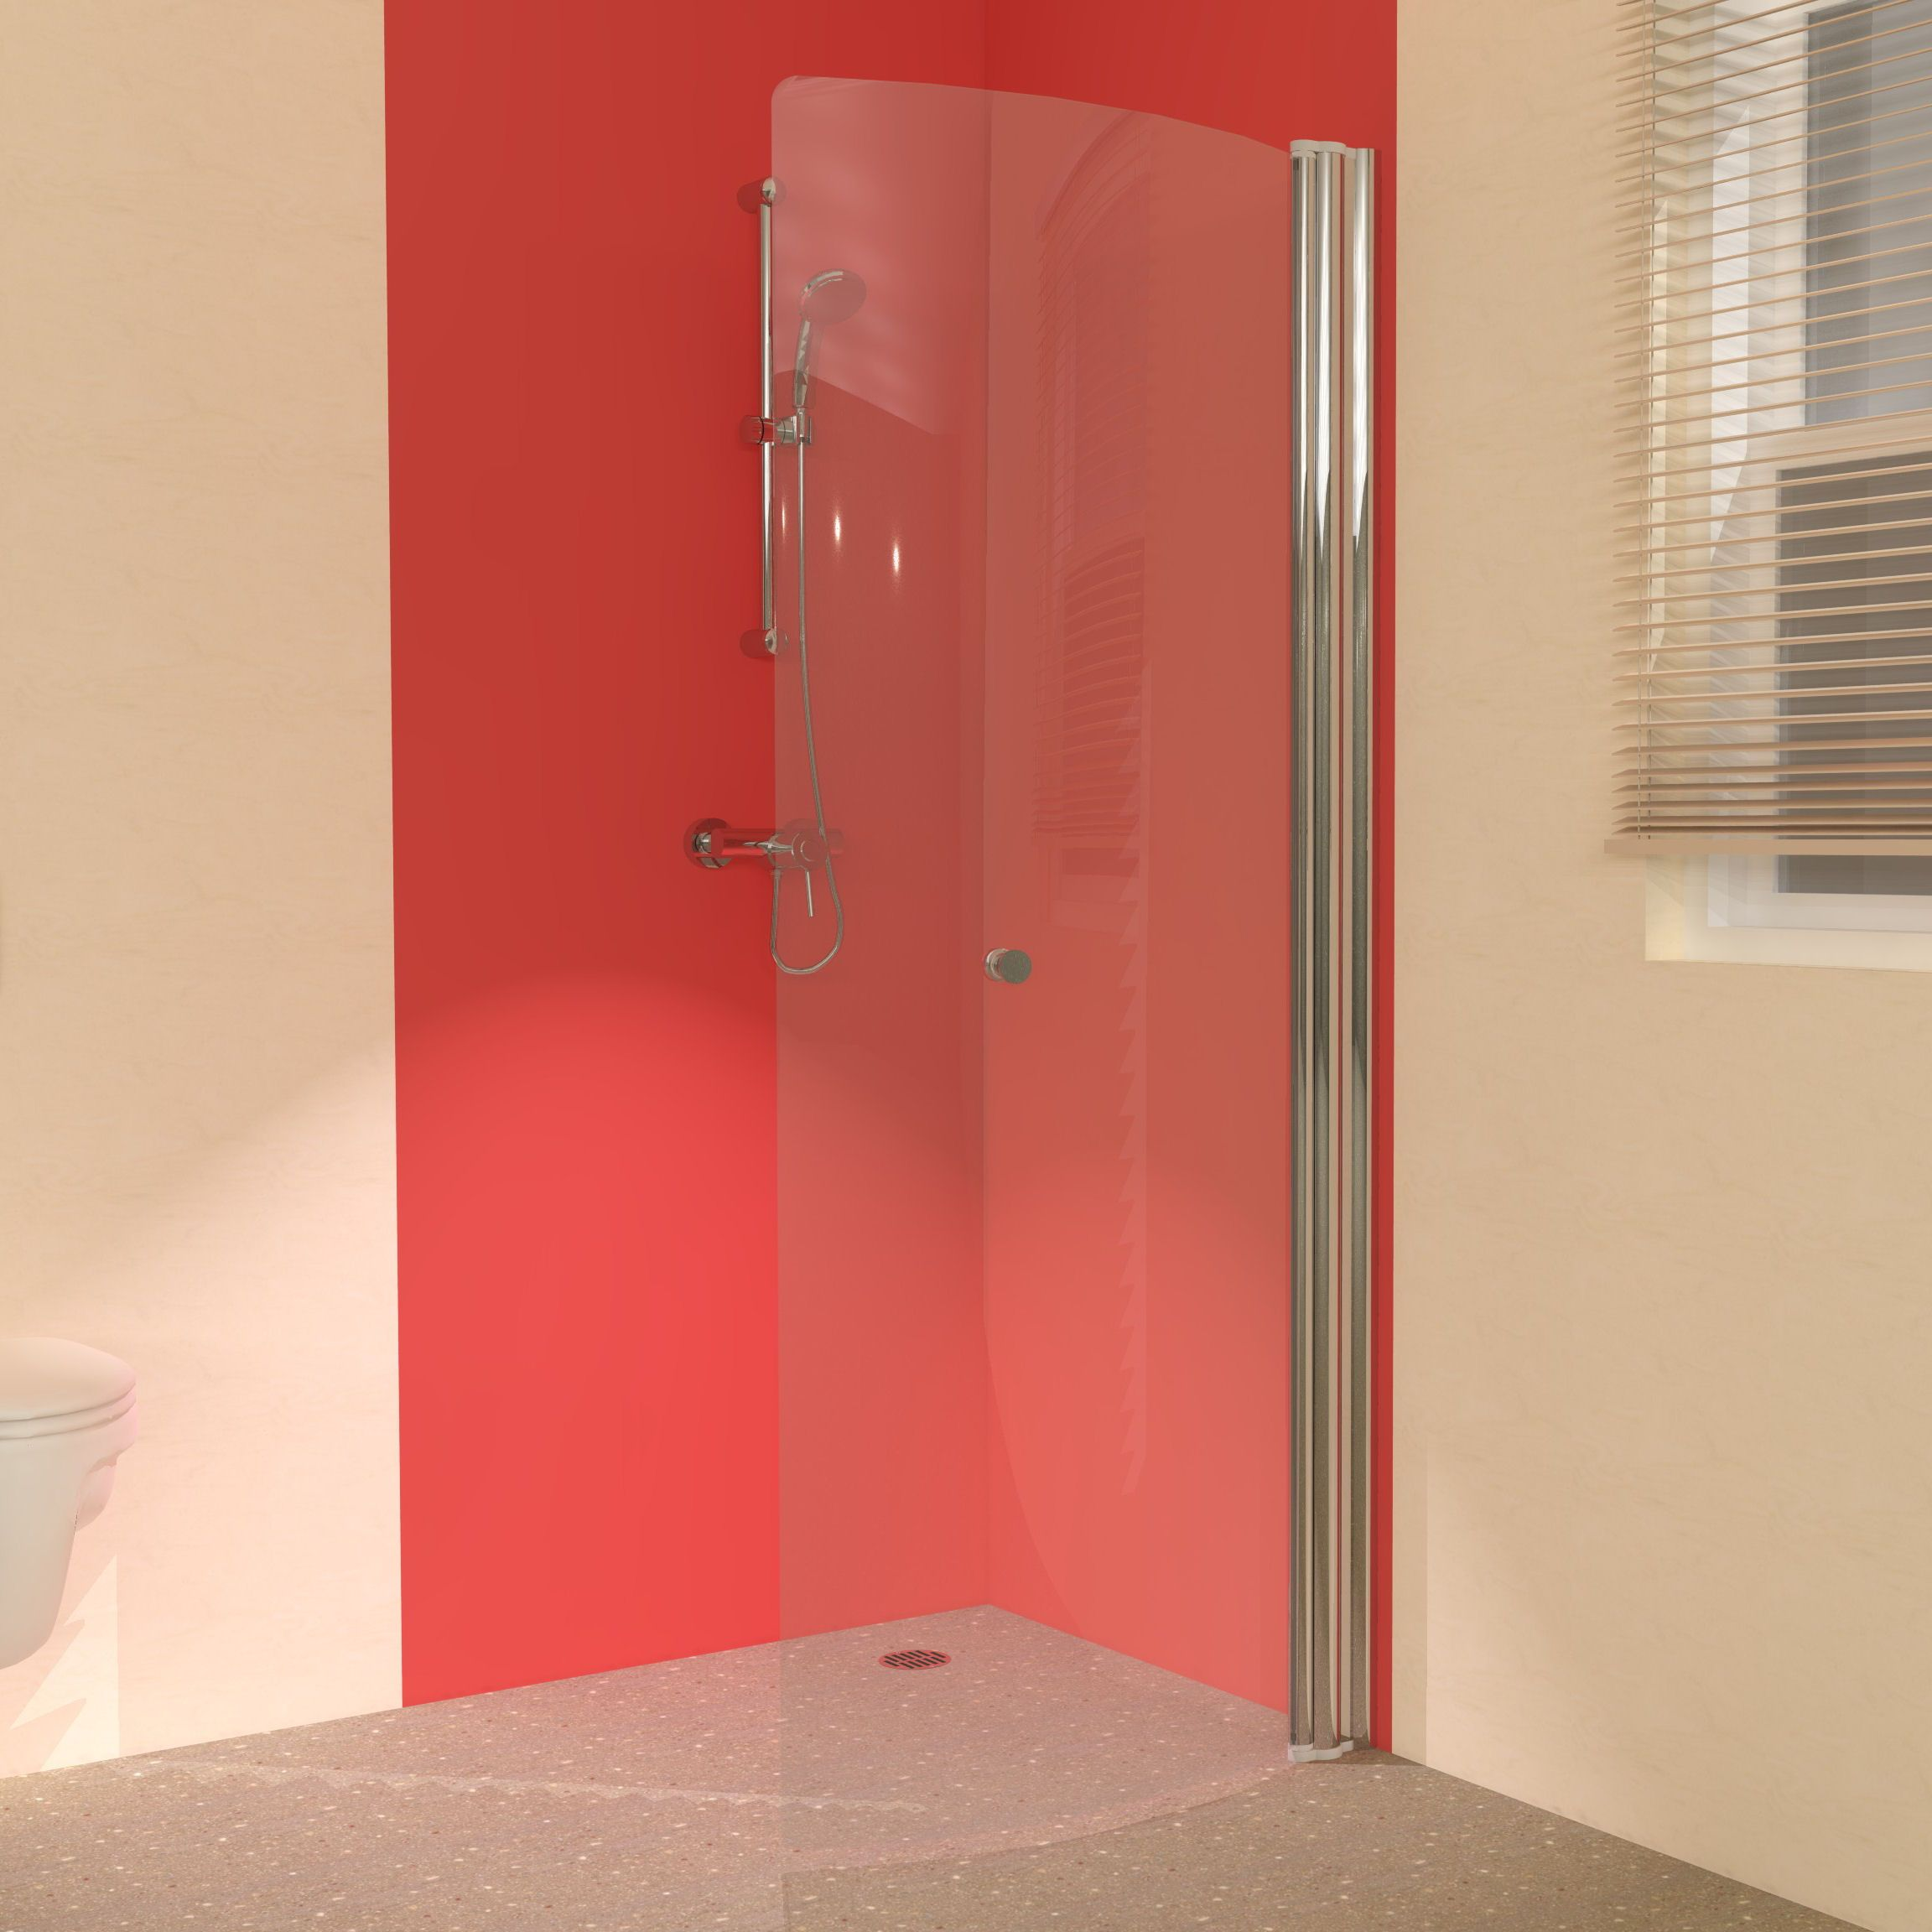 The Uniarc 850 Hinged Wet Room Shower Screen Please Visit